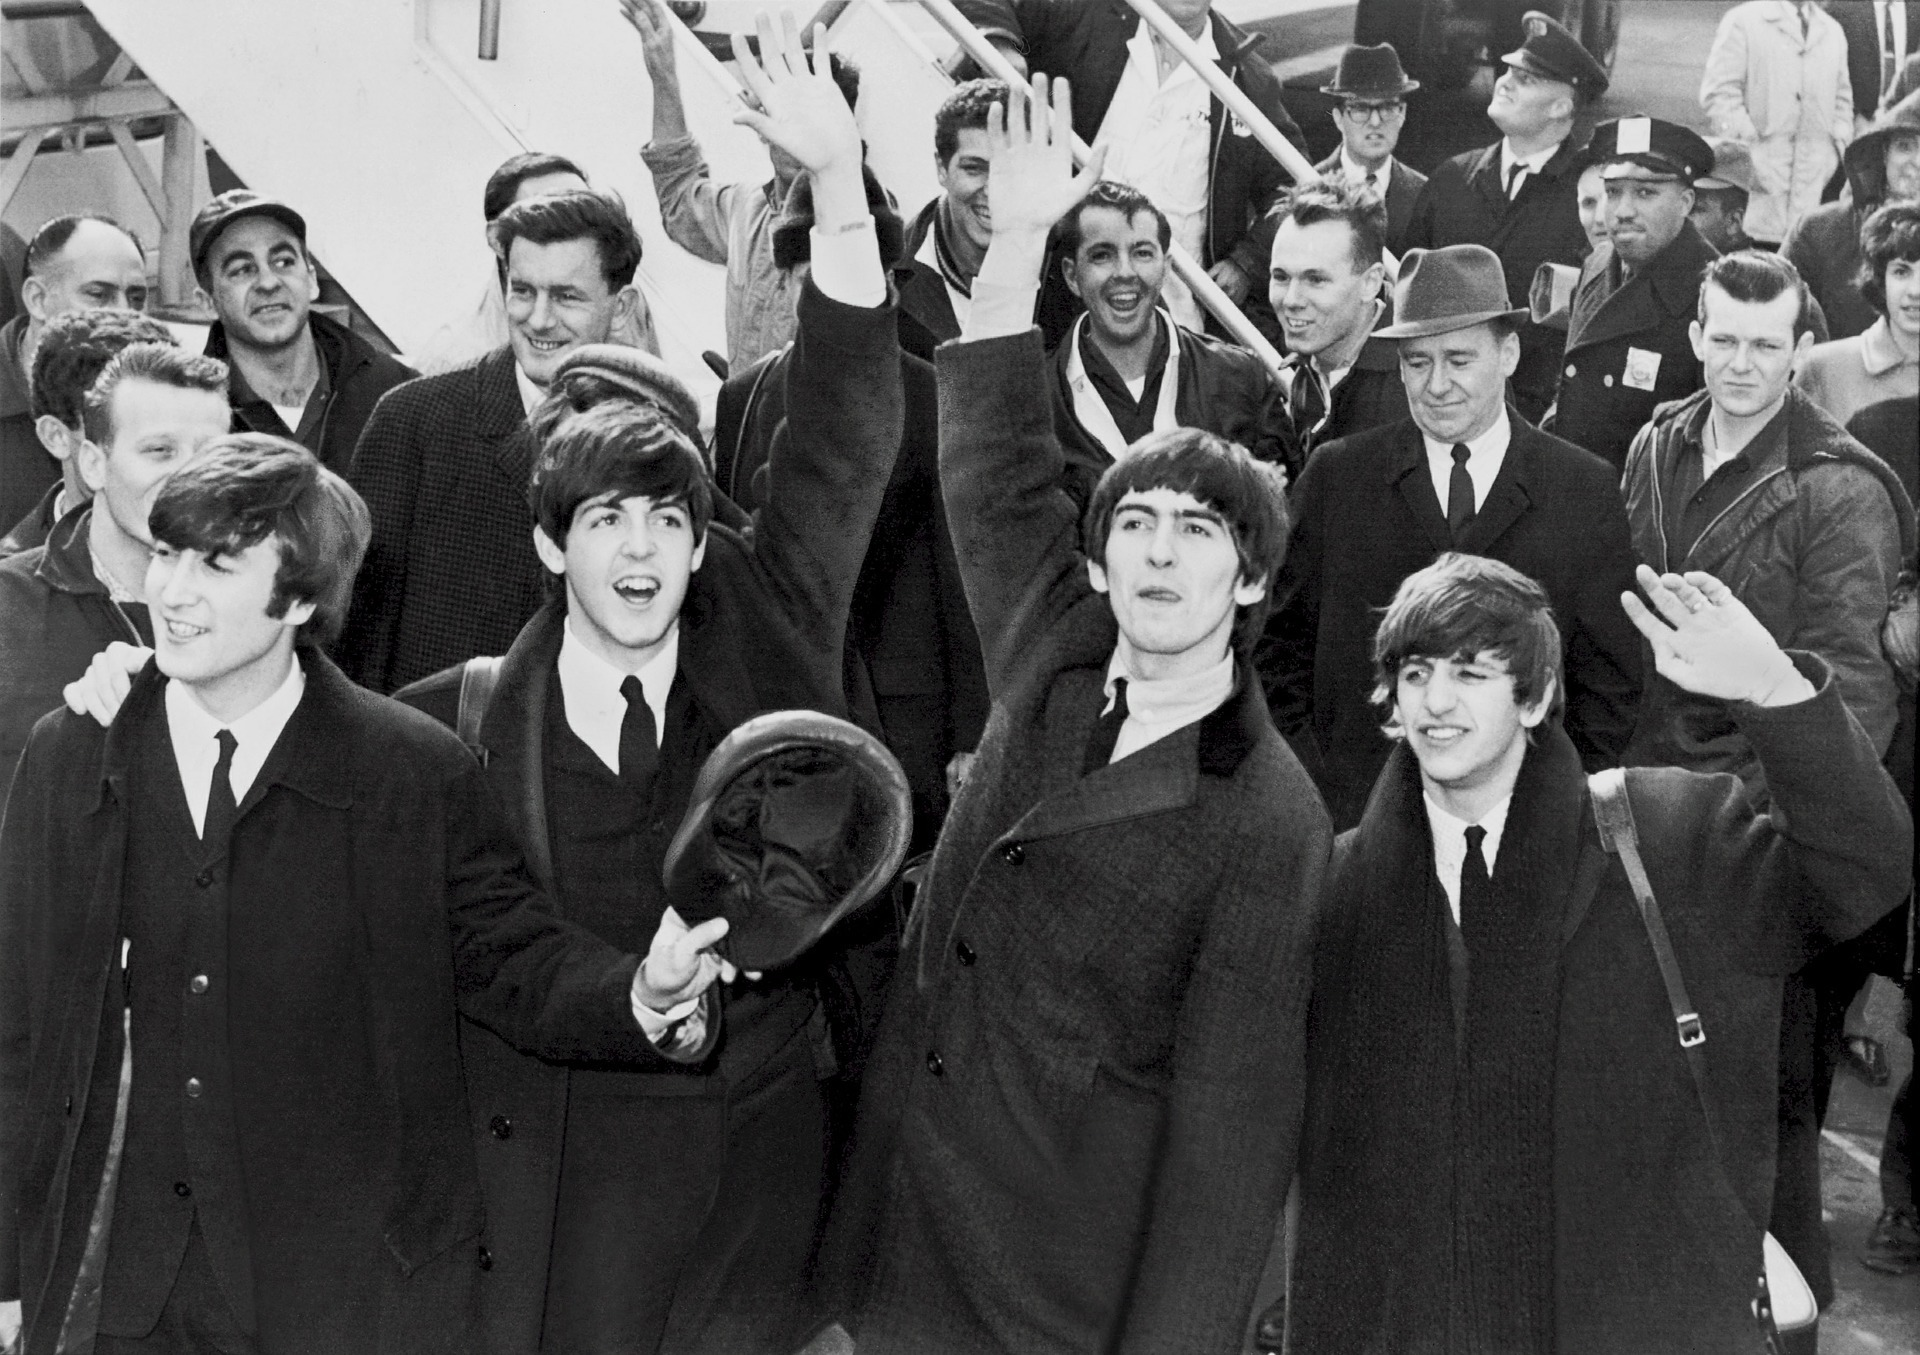 Hundreds of Beatles items up for sale at Omega Auctions